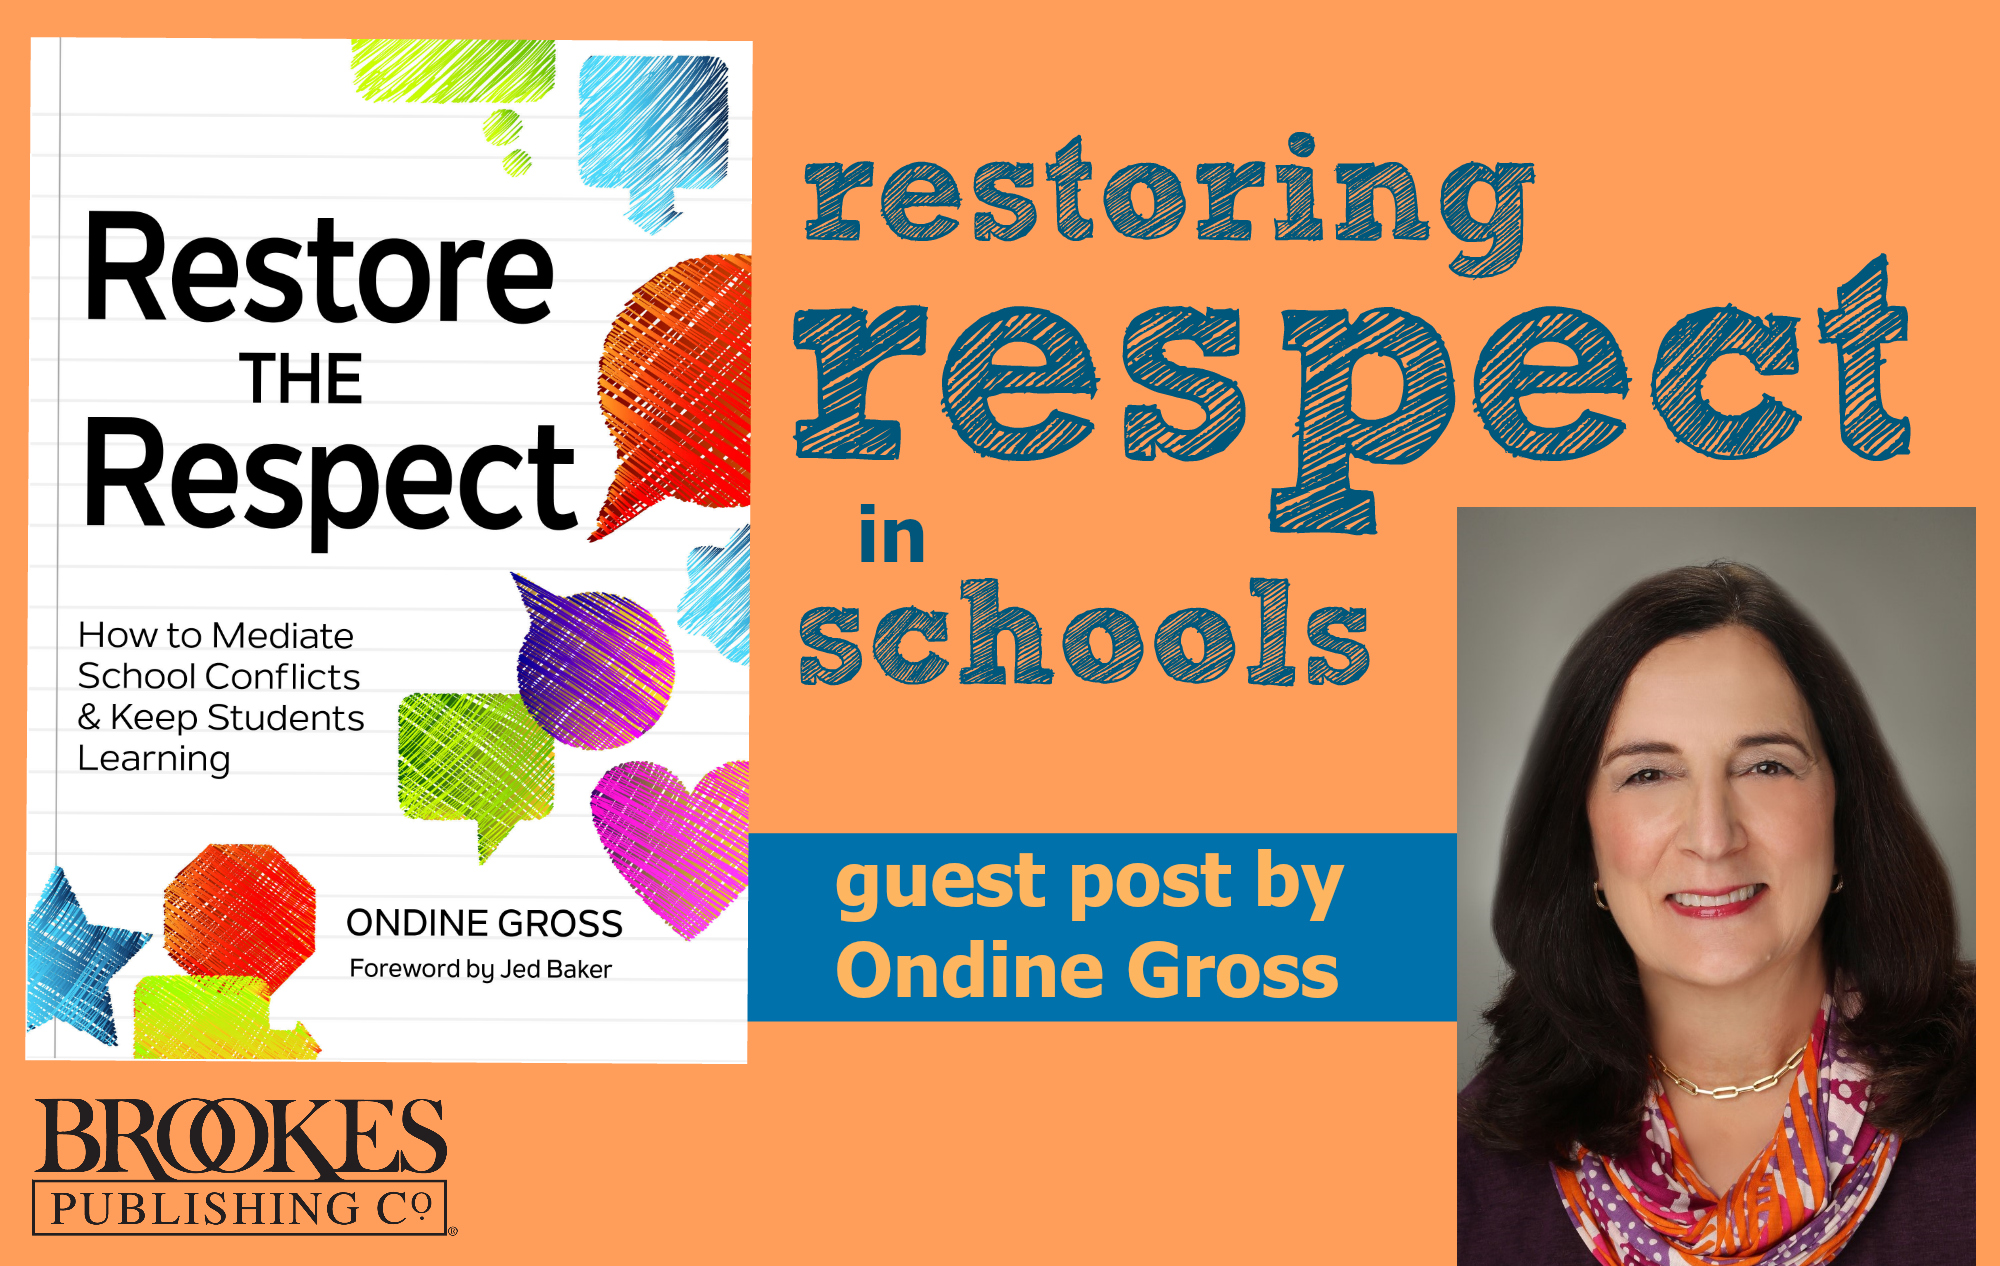 restore the respect ondine gross blog post interview